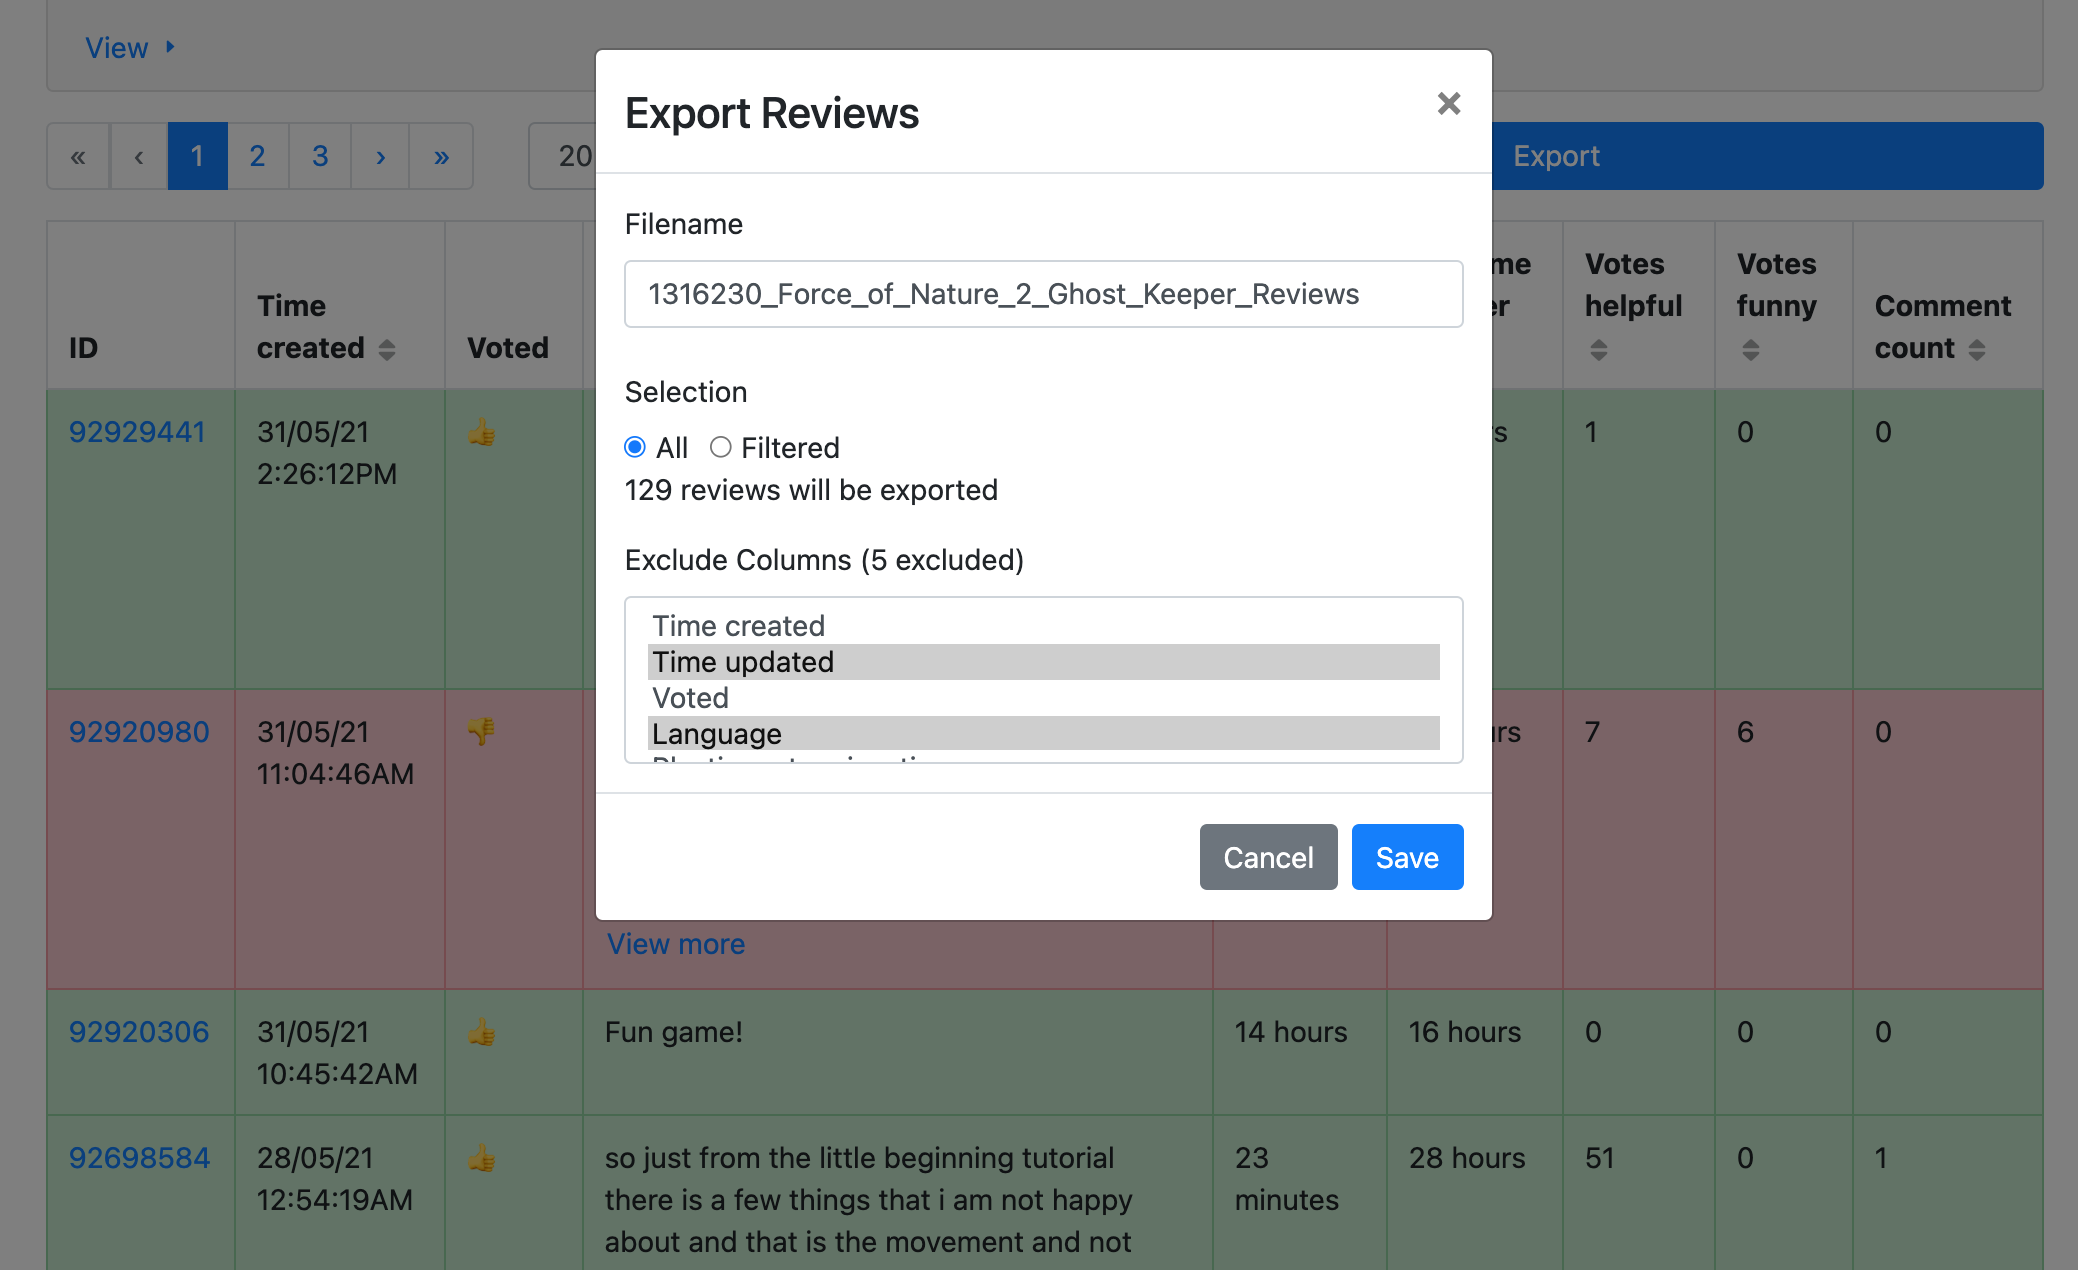 A screenshot of the Steam review explorer's export view